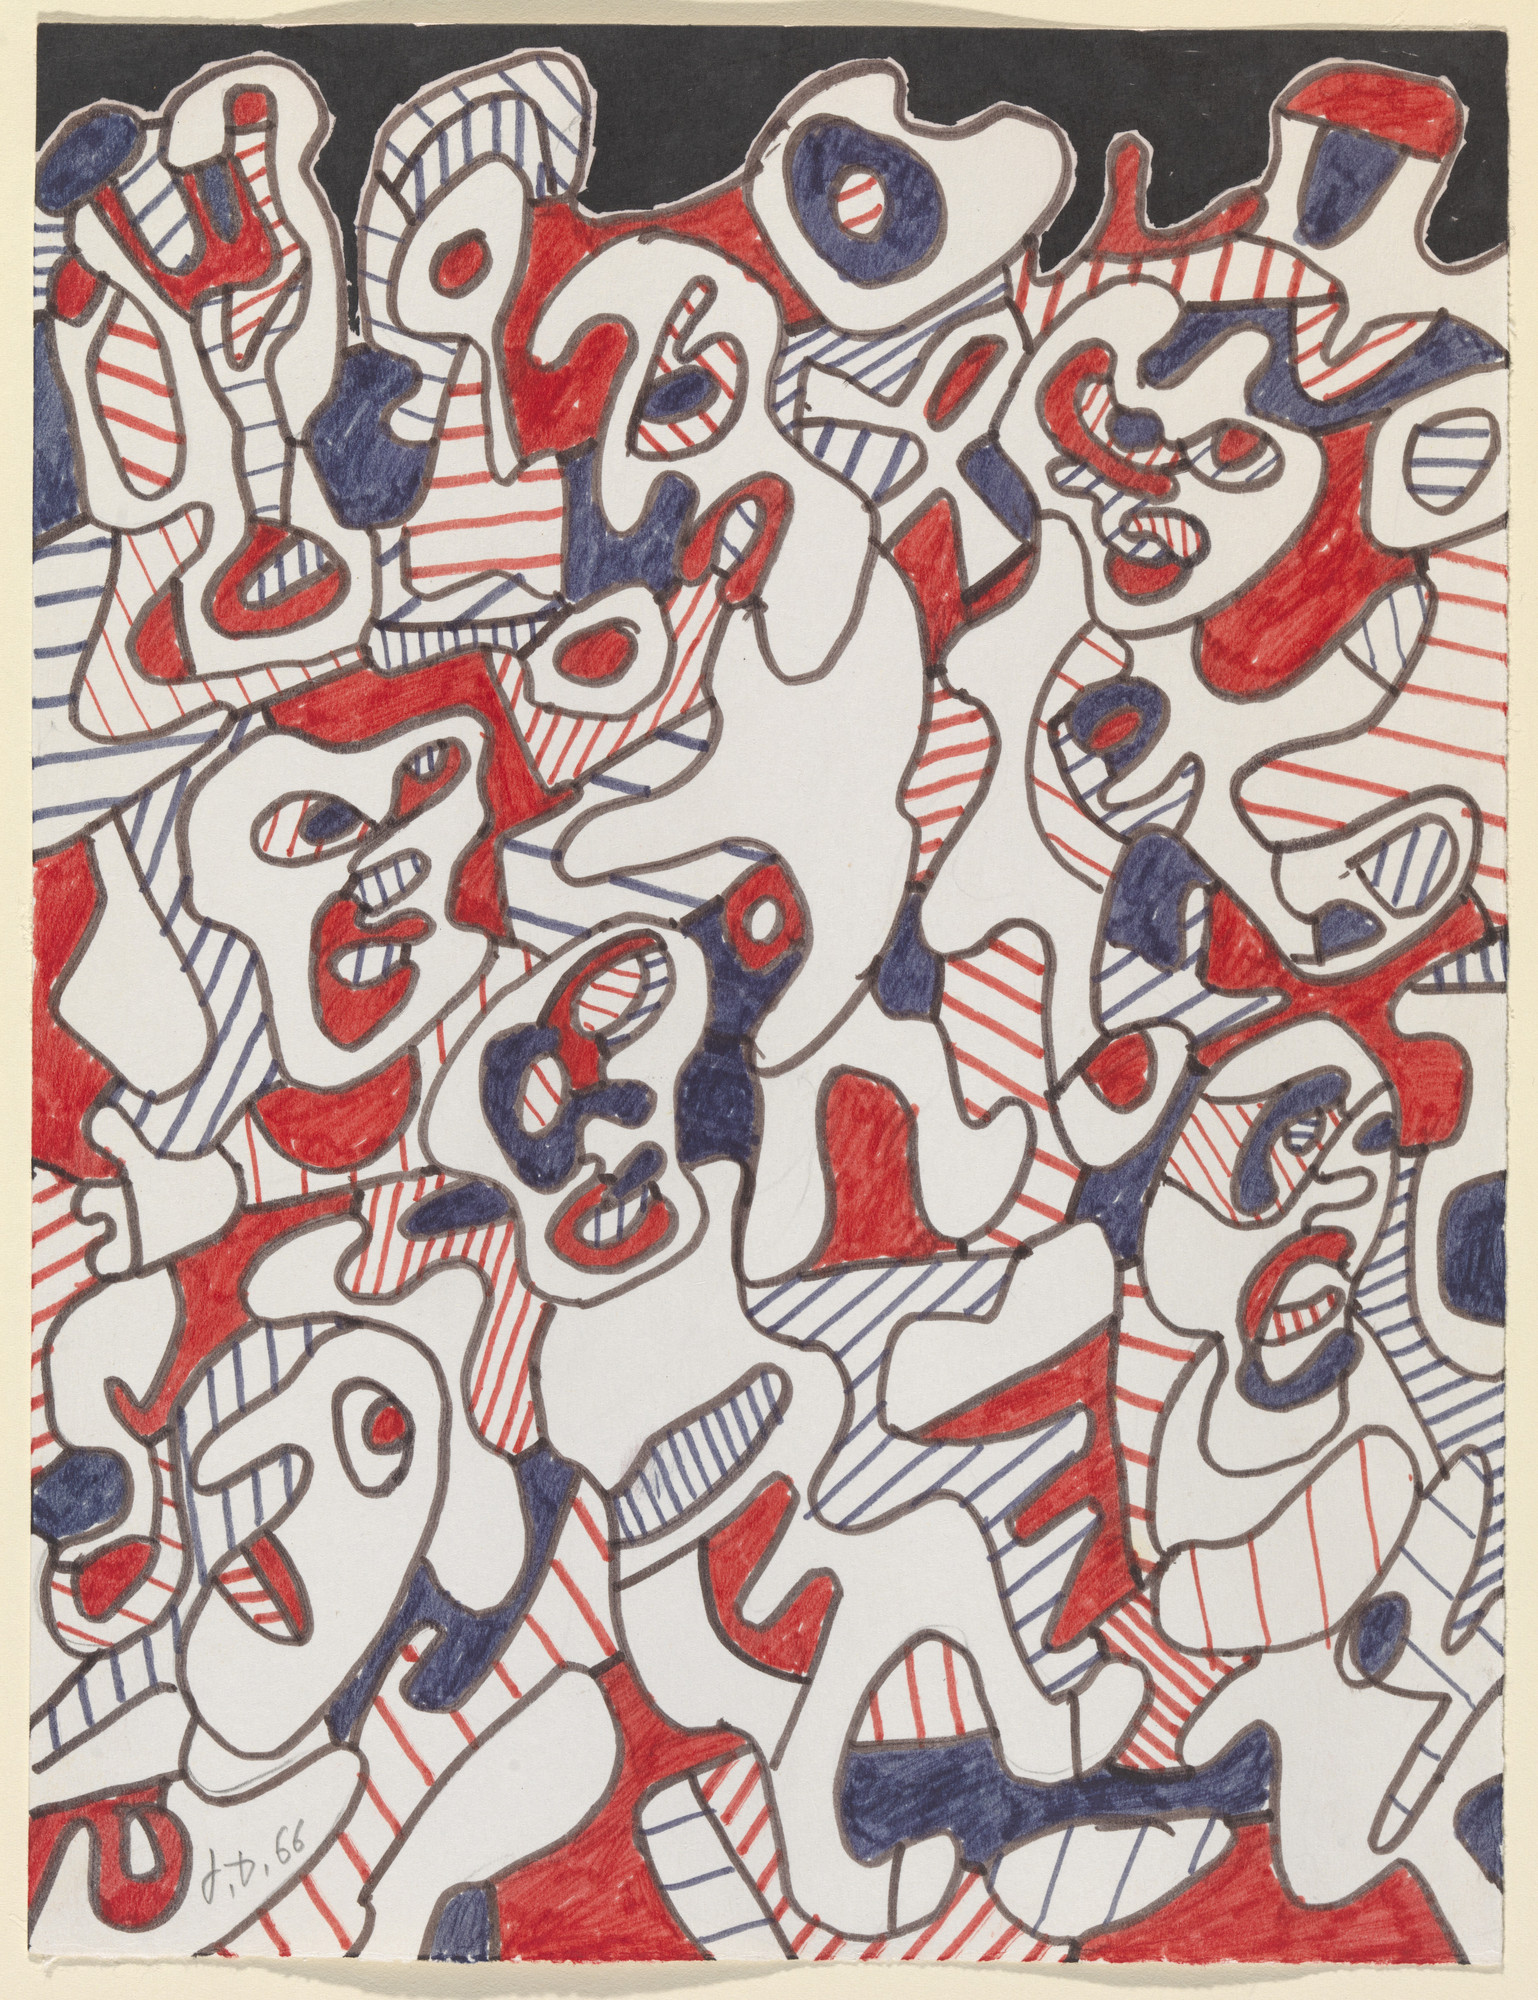 Jean Dubuffet Verbal Agreement Six Figures 1966 Moma